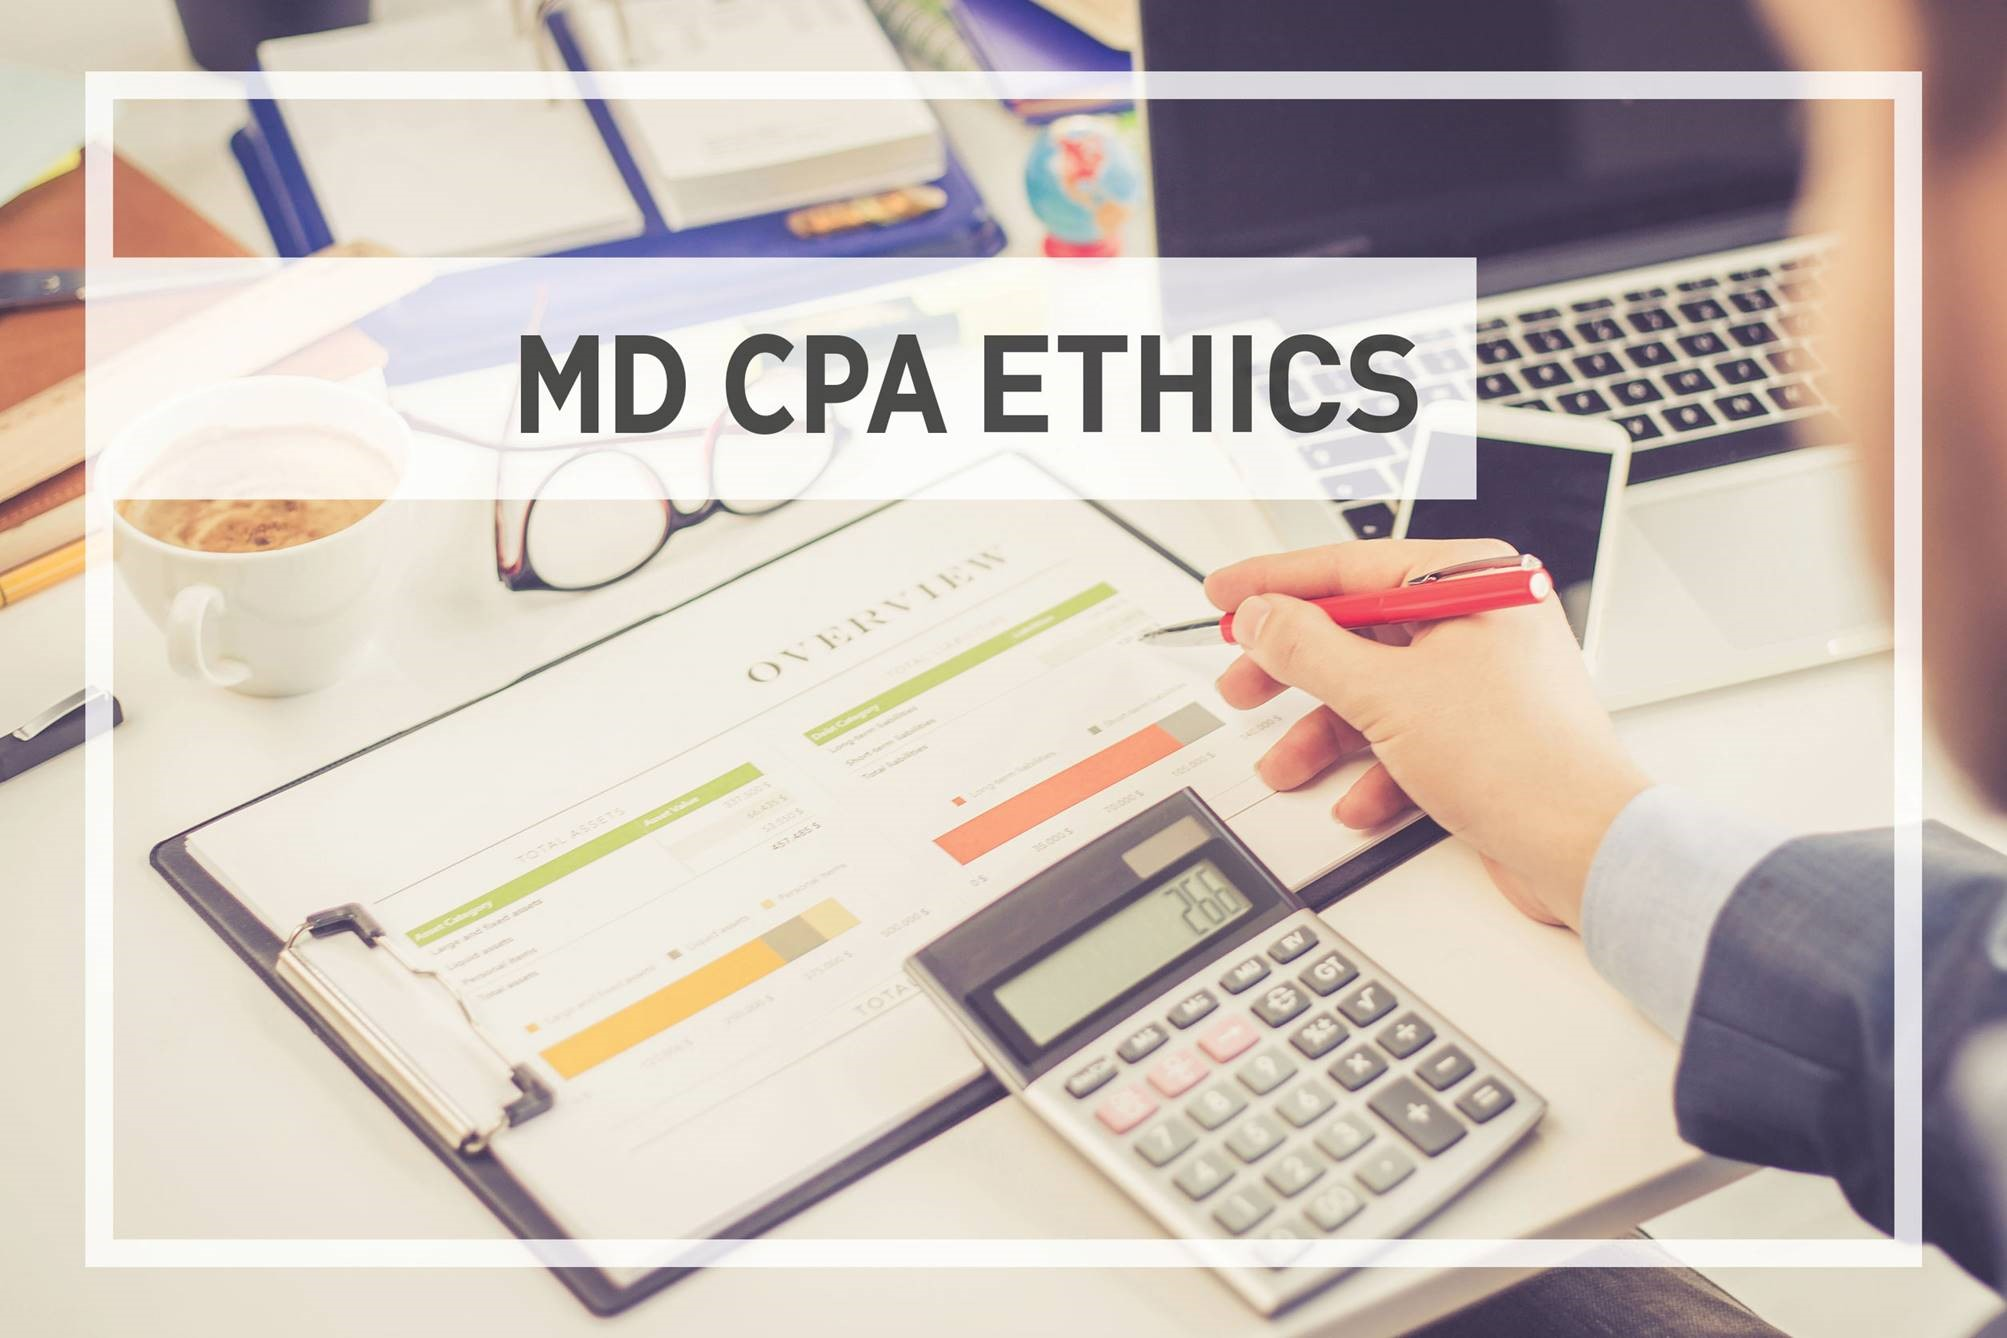 Maryland CPA Ethics, Columbia, MD